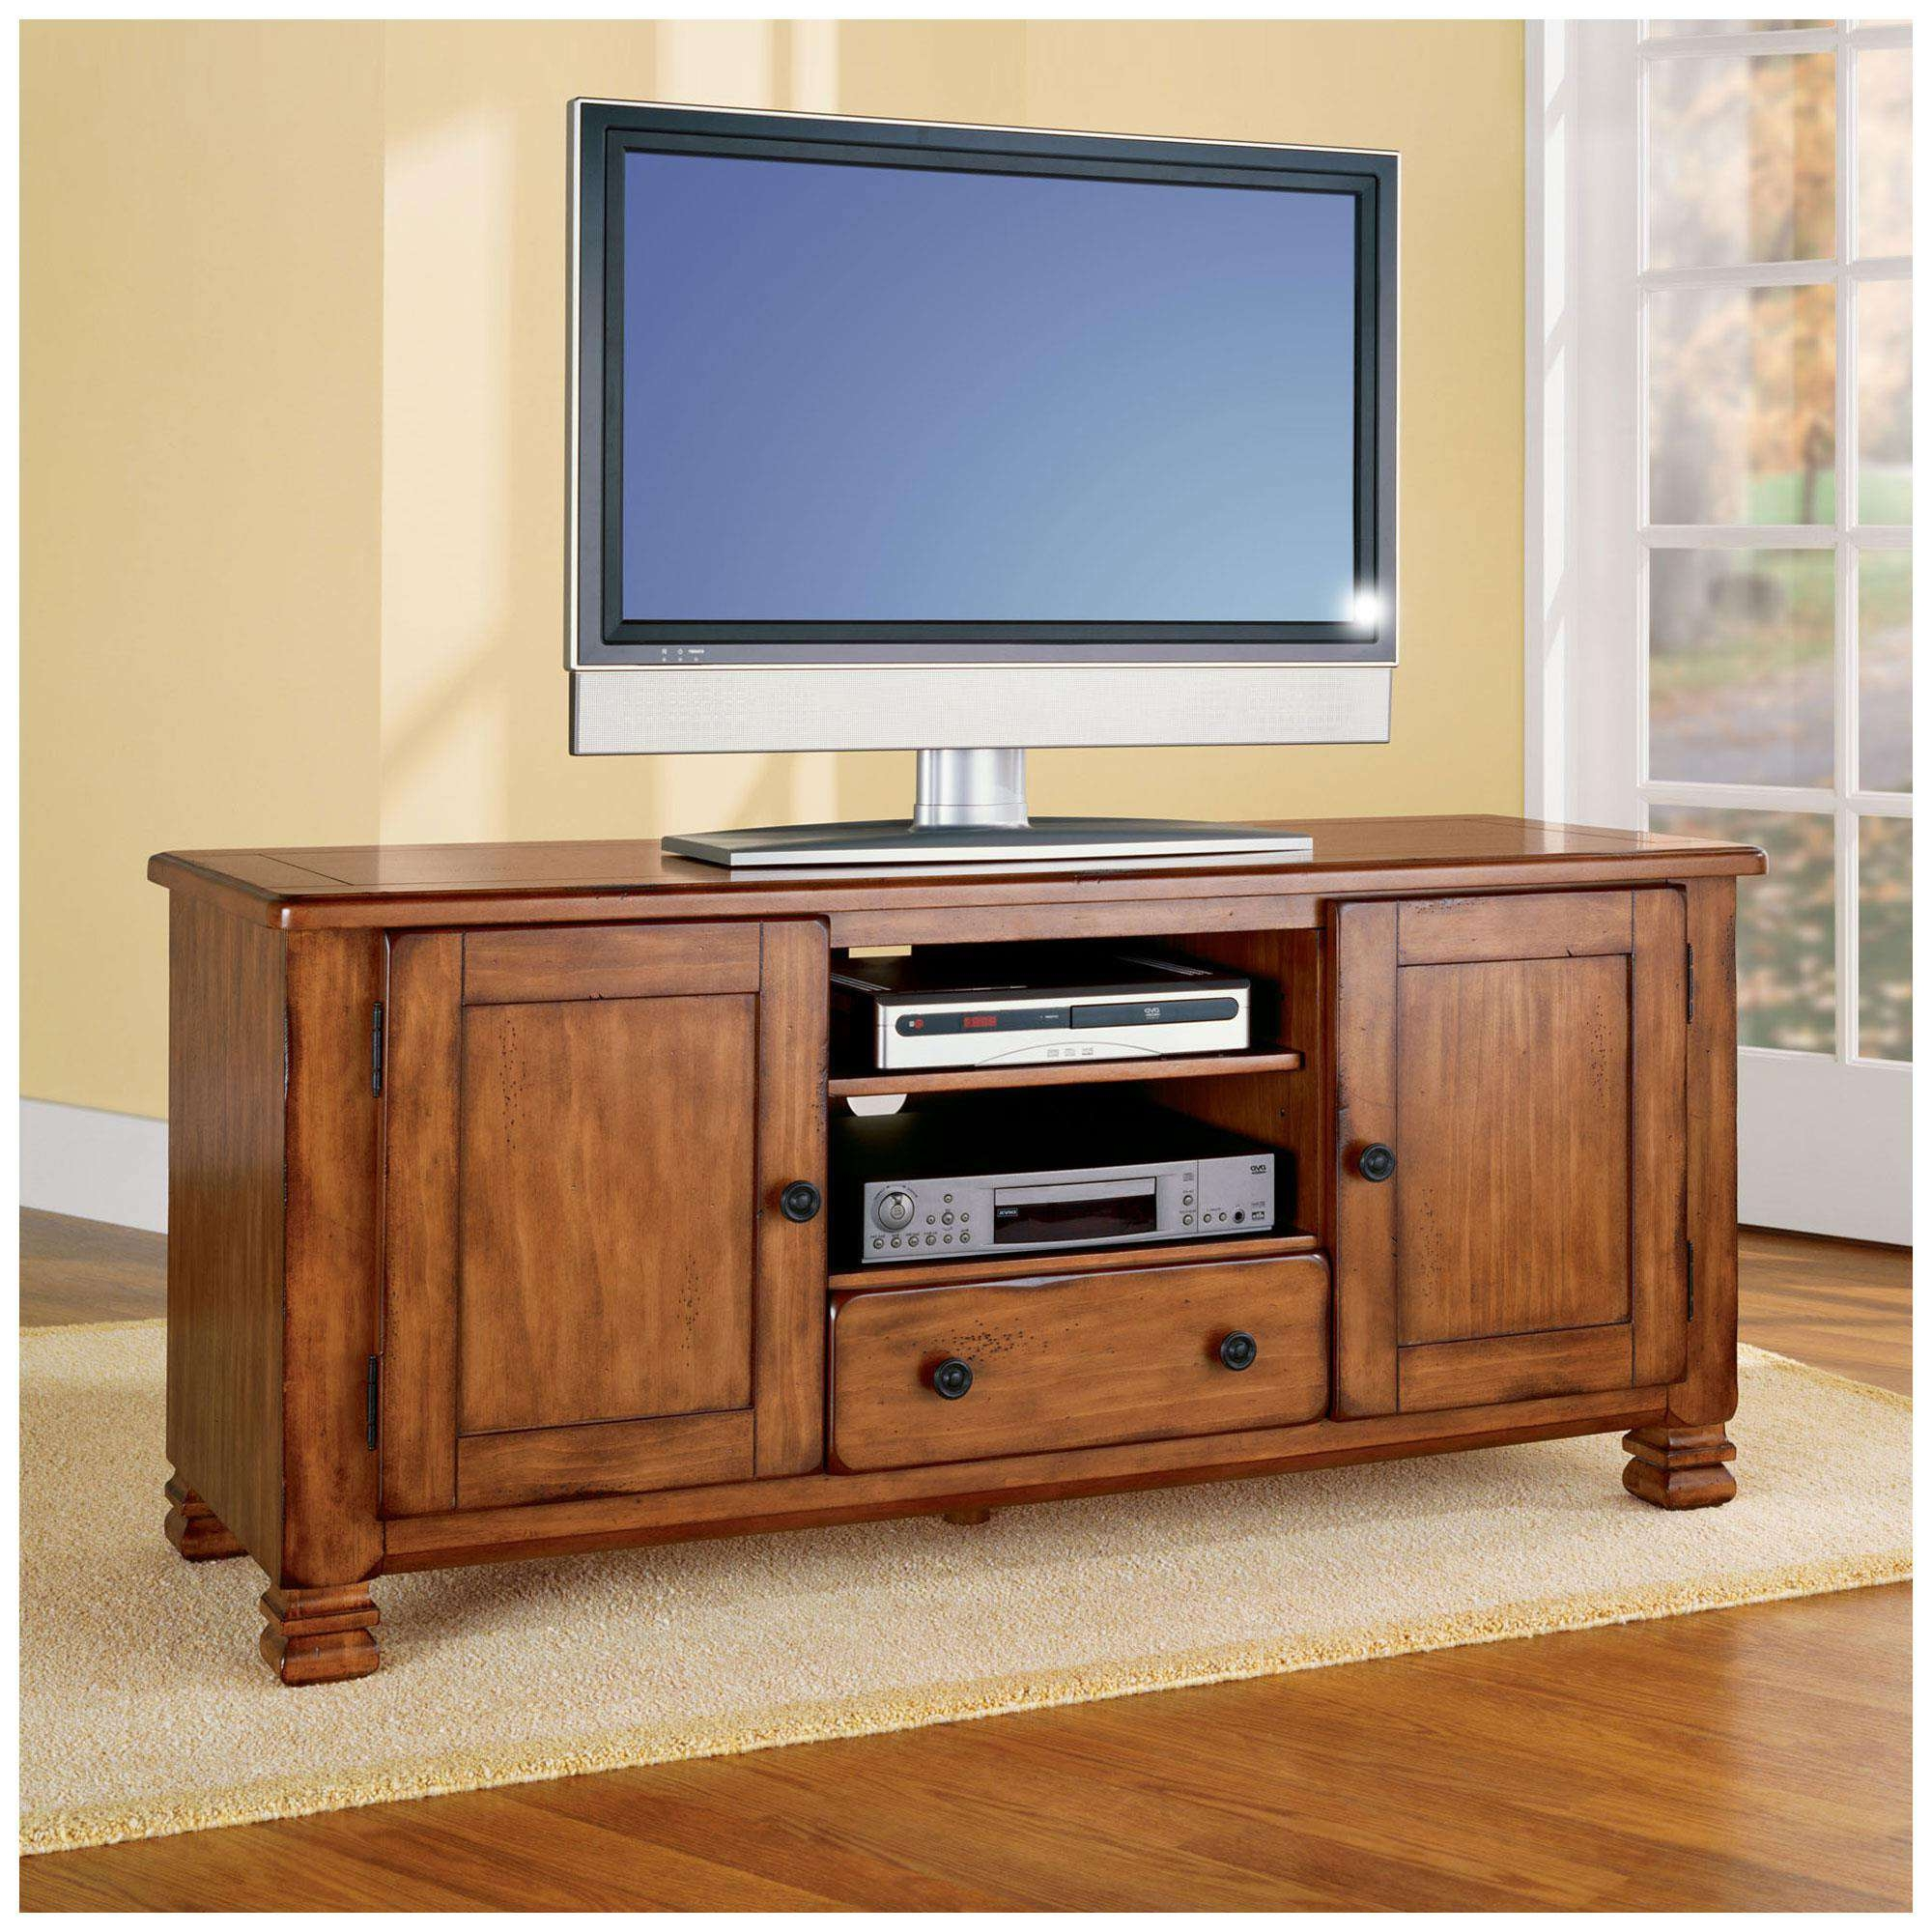 79 Literarywondrous Light Wood Tv Stand Photo Design Home Stands With Light Brown Tv Stands (View 4 of 20)